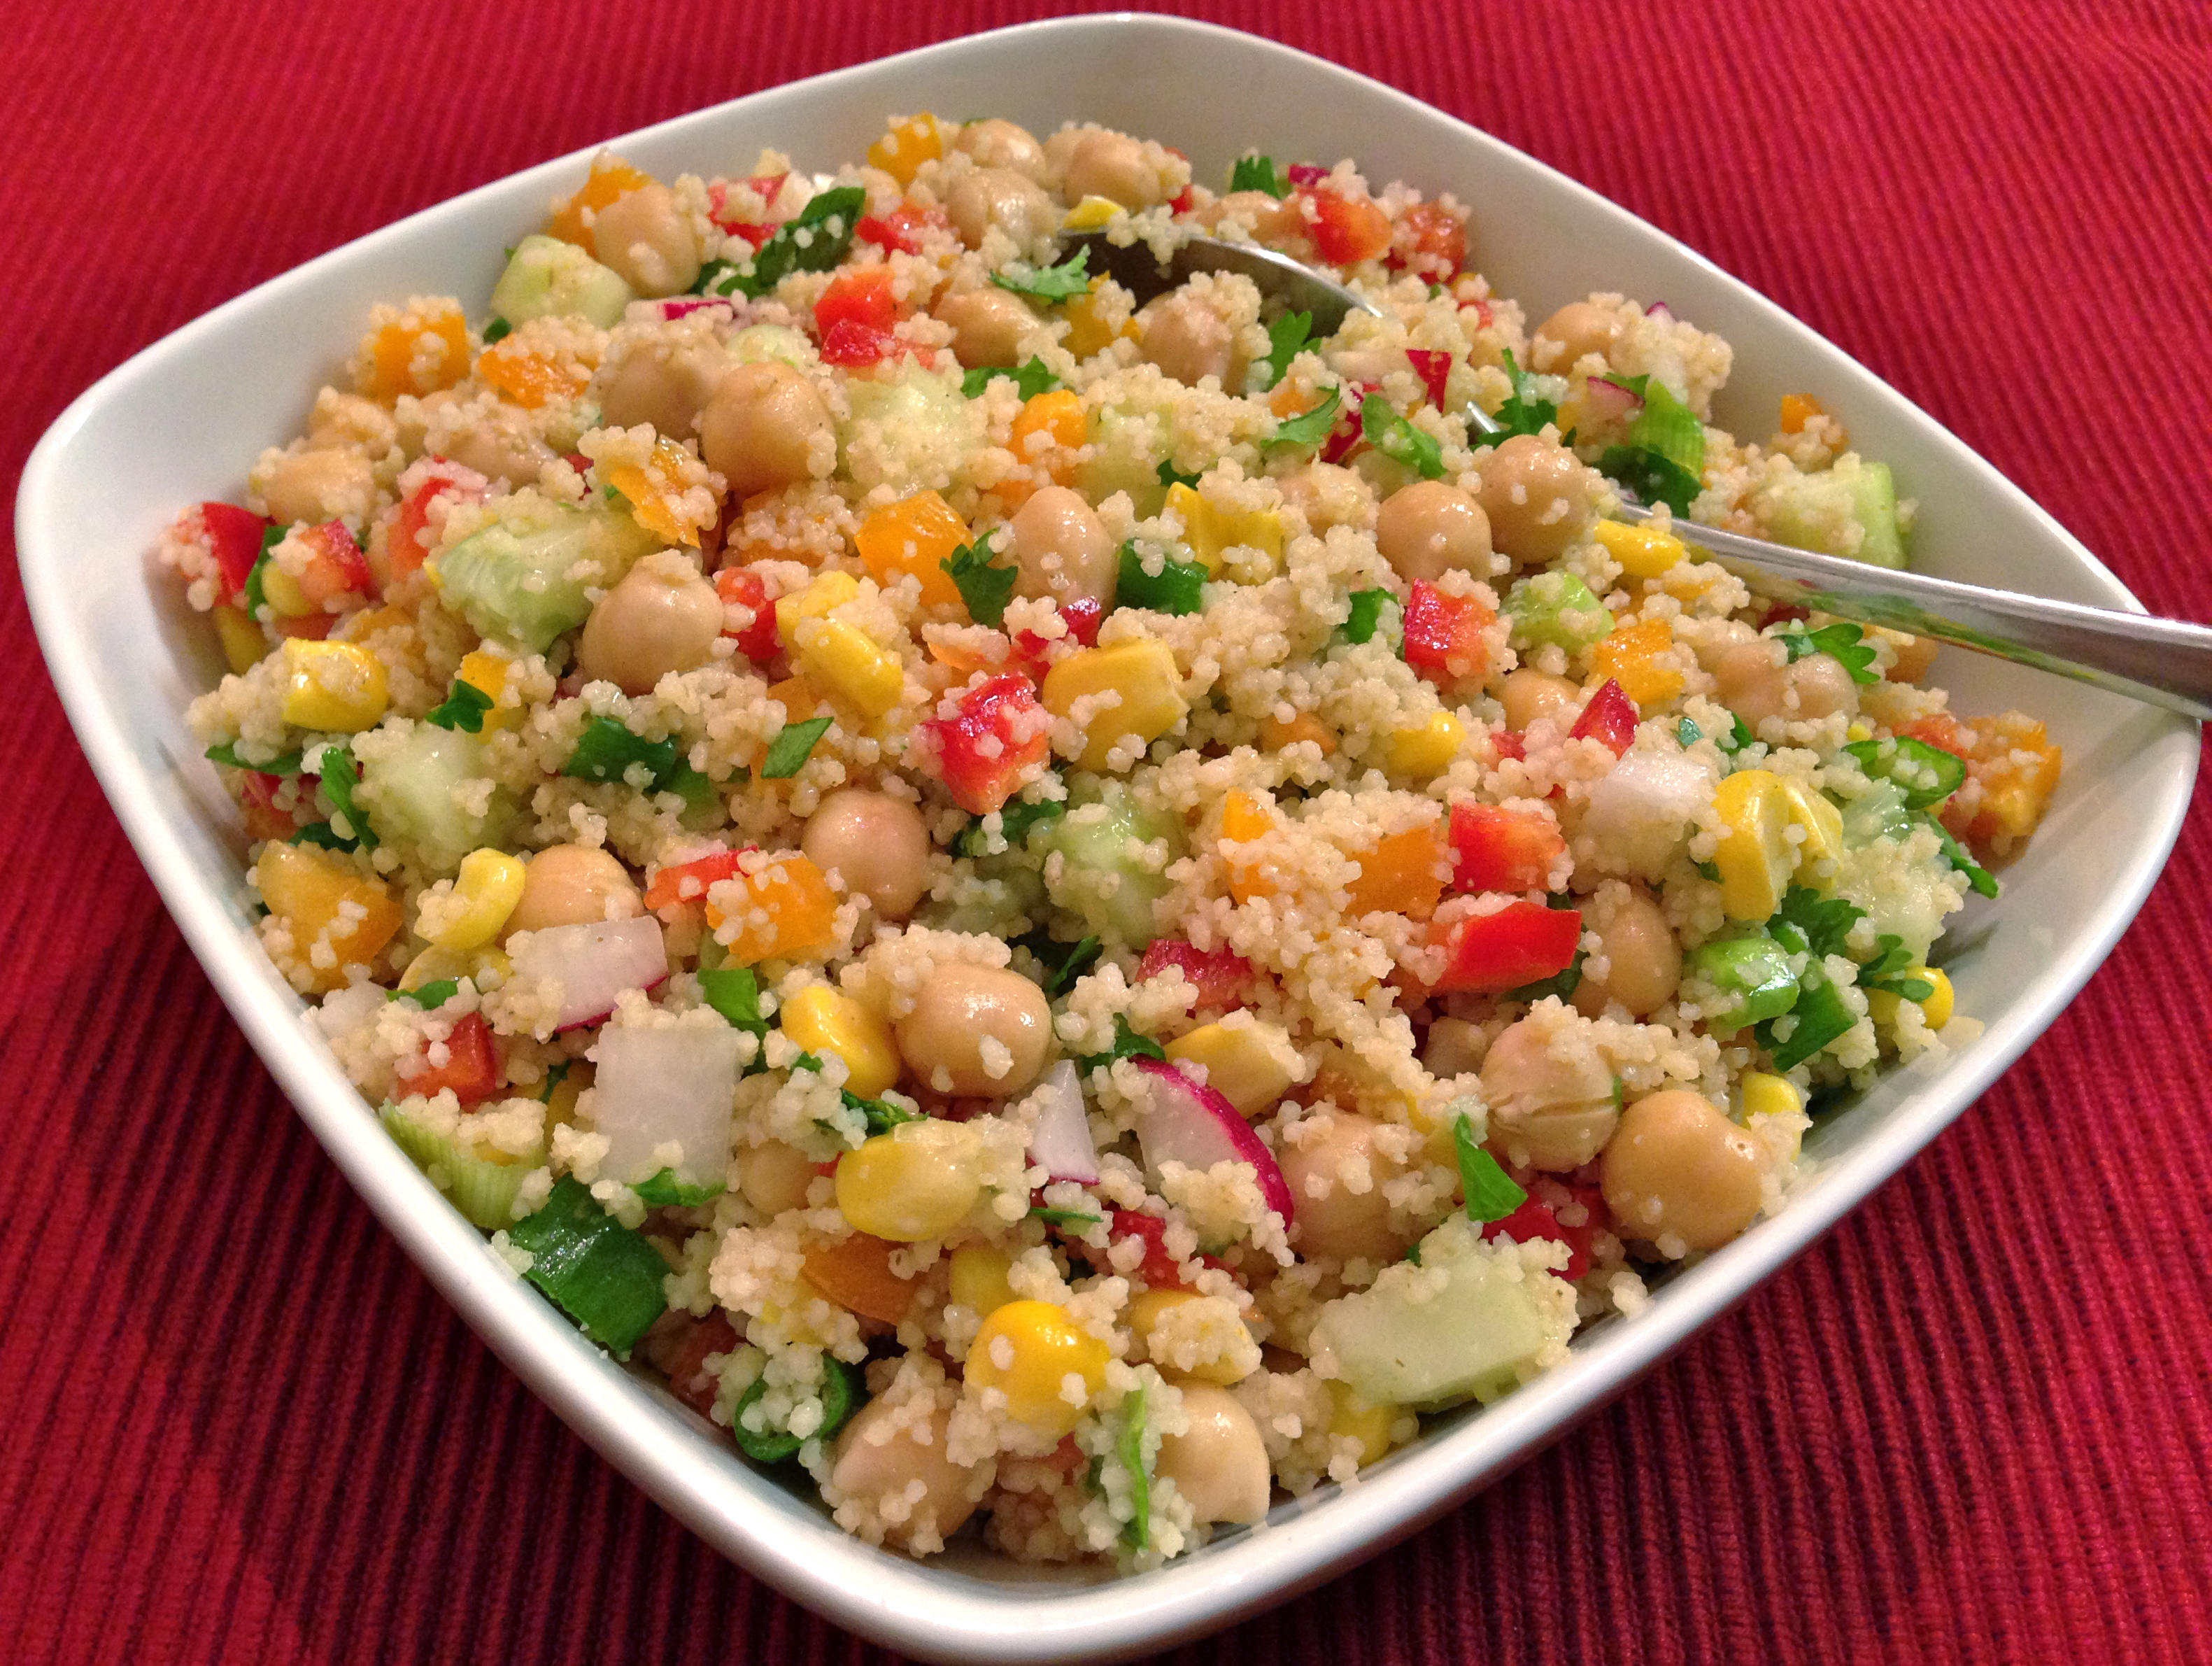 Couscous with Chickpea Salad Image